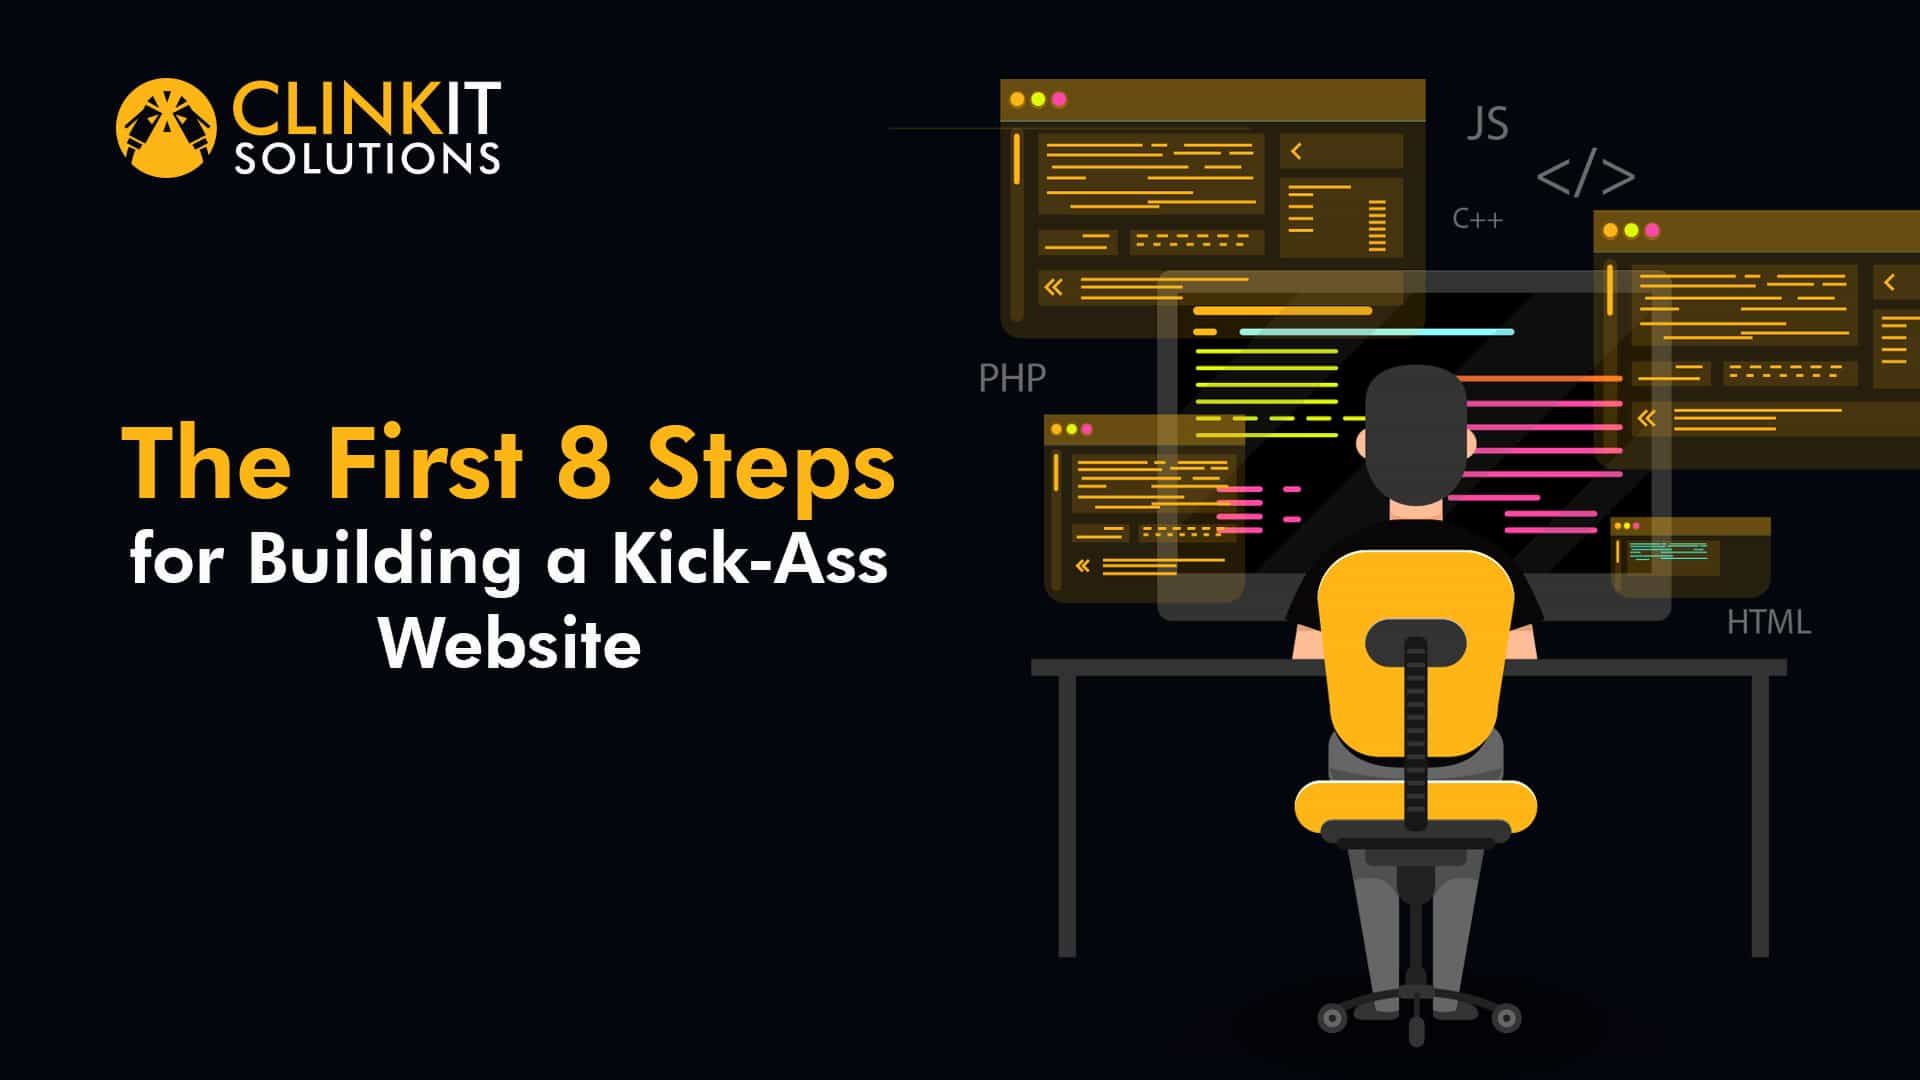 The First 8 Steps for Building a Kick-Ass Website